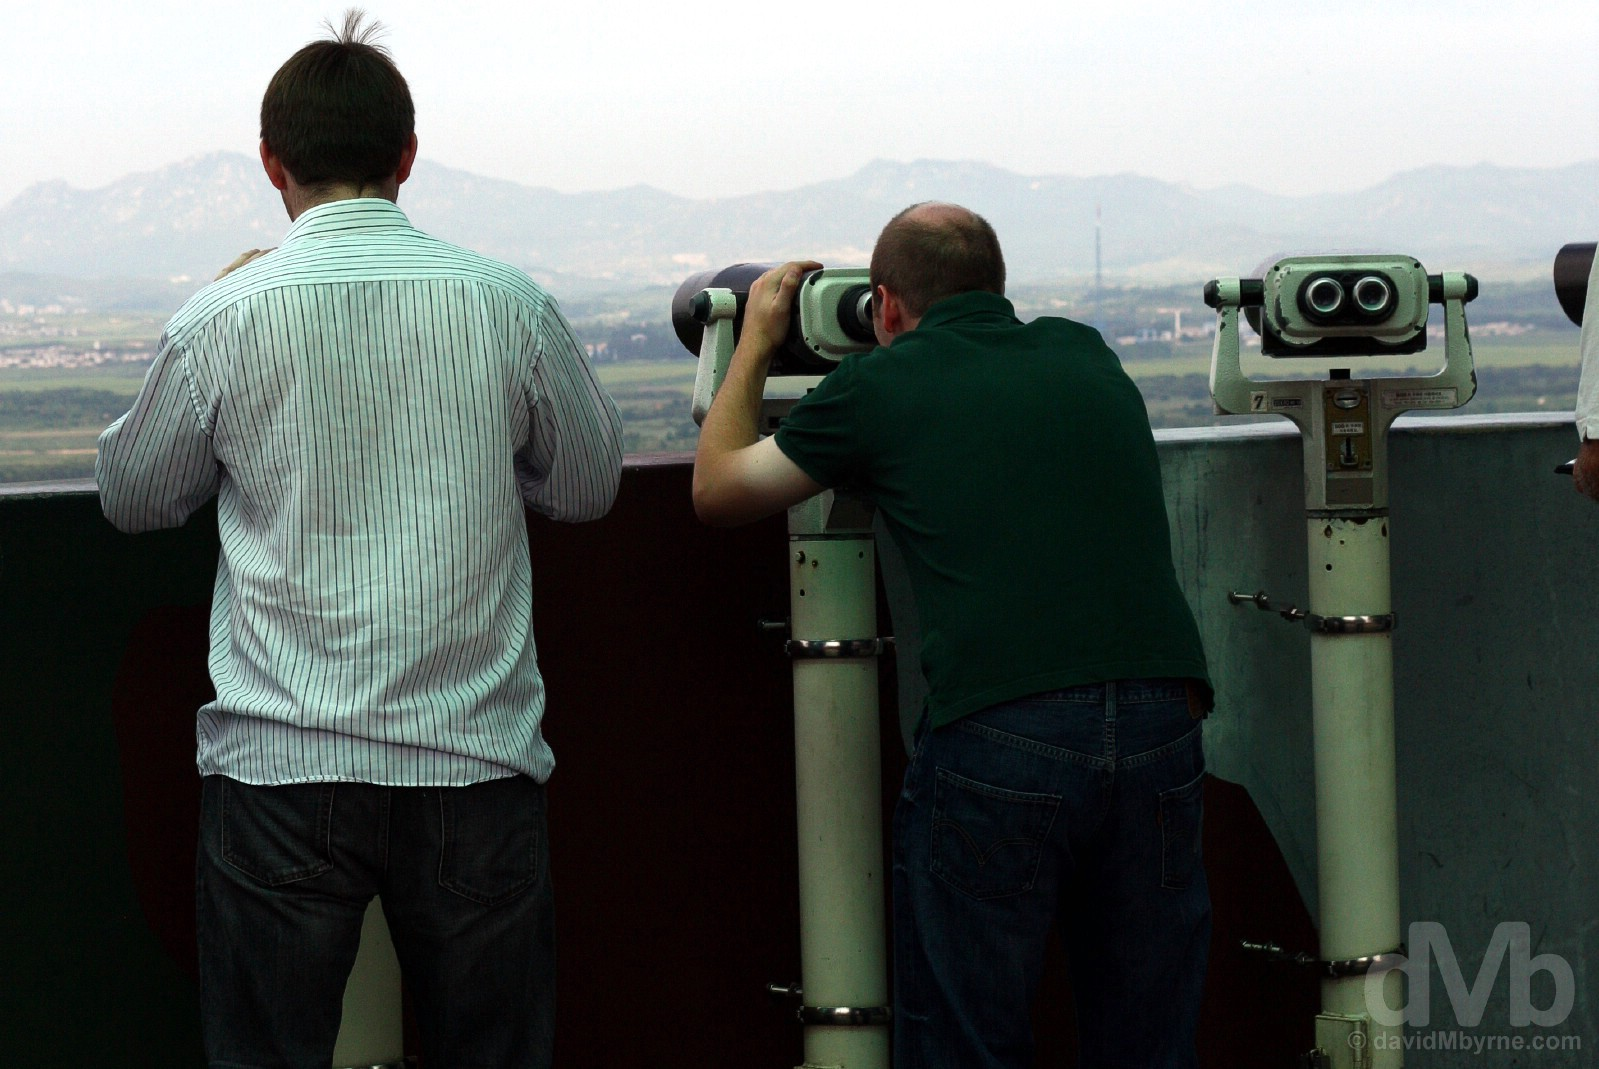 Peering into North Korea from the Dora Observatory of the Demilitarized Zone (DMZ), South Korea. August 21, 2009.